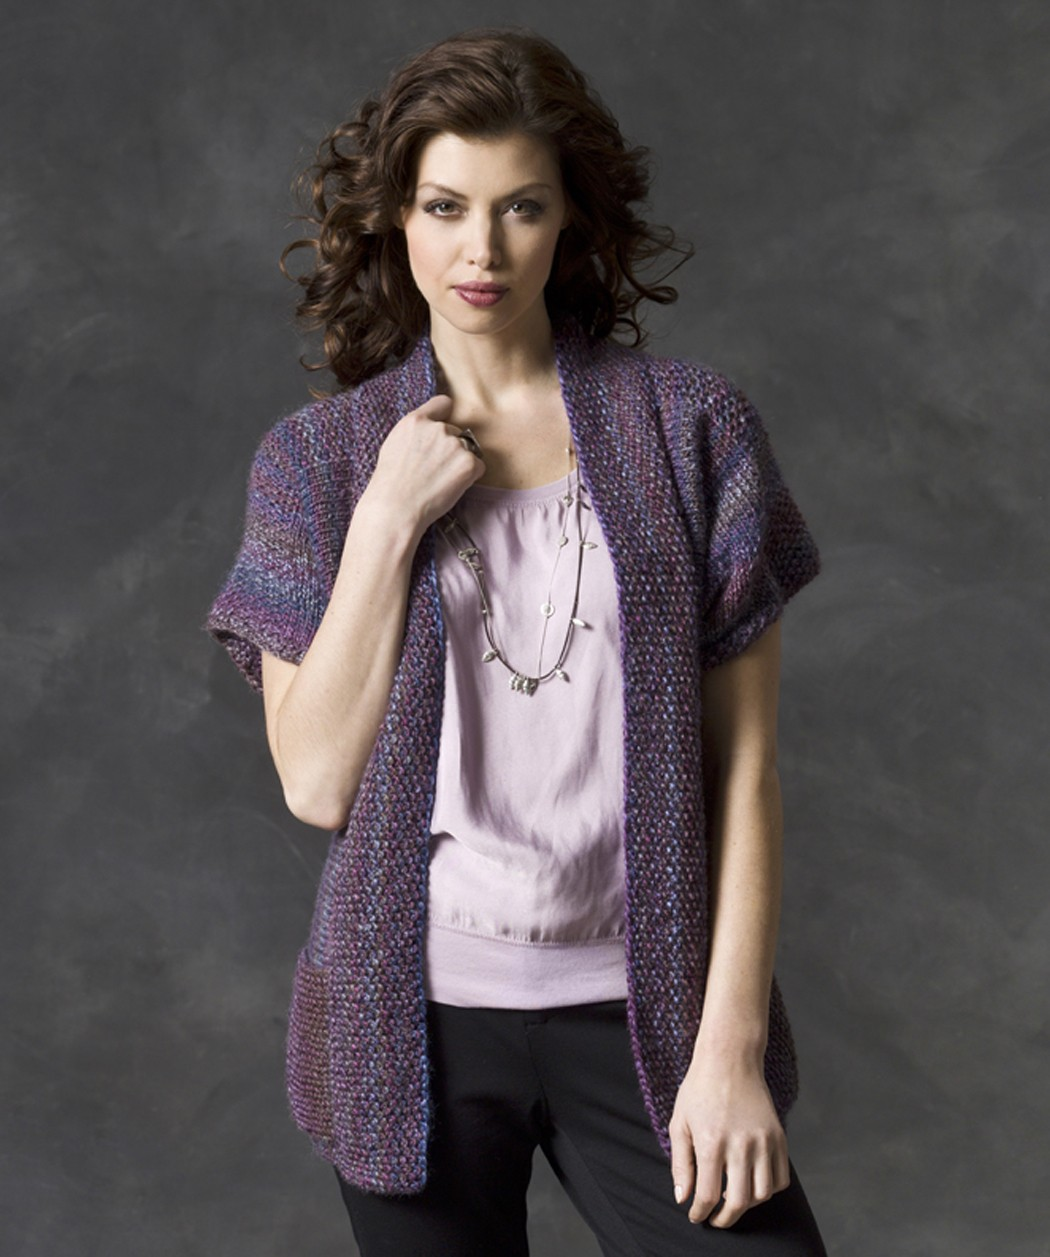 Women s Cardigan Knitting Pattern : Knitted Sweater Patterns for Women A Knitting Blog